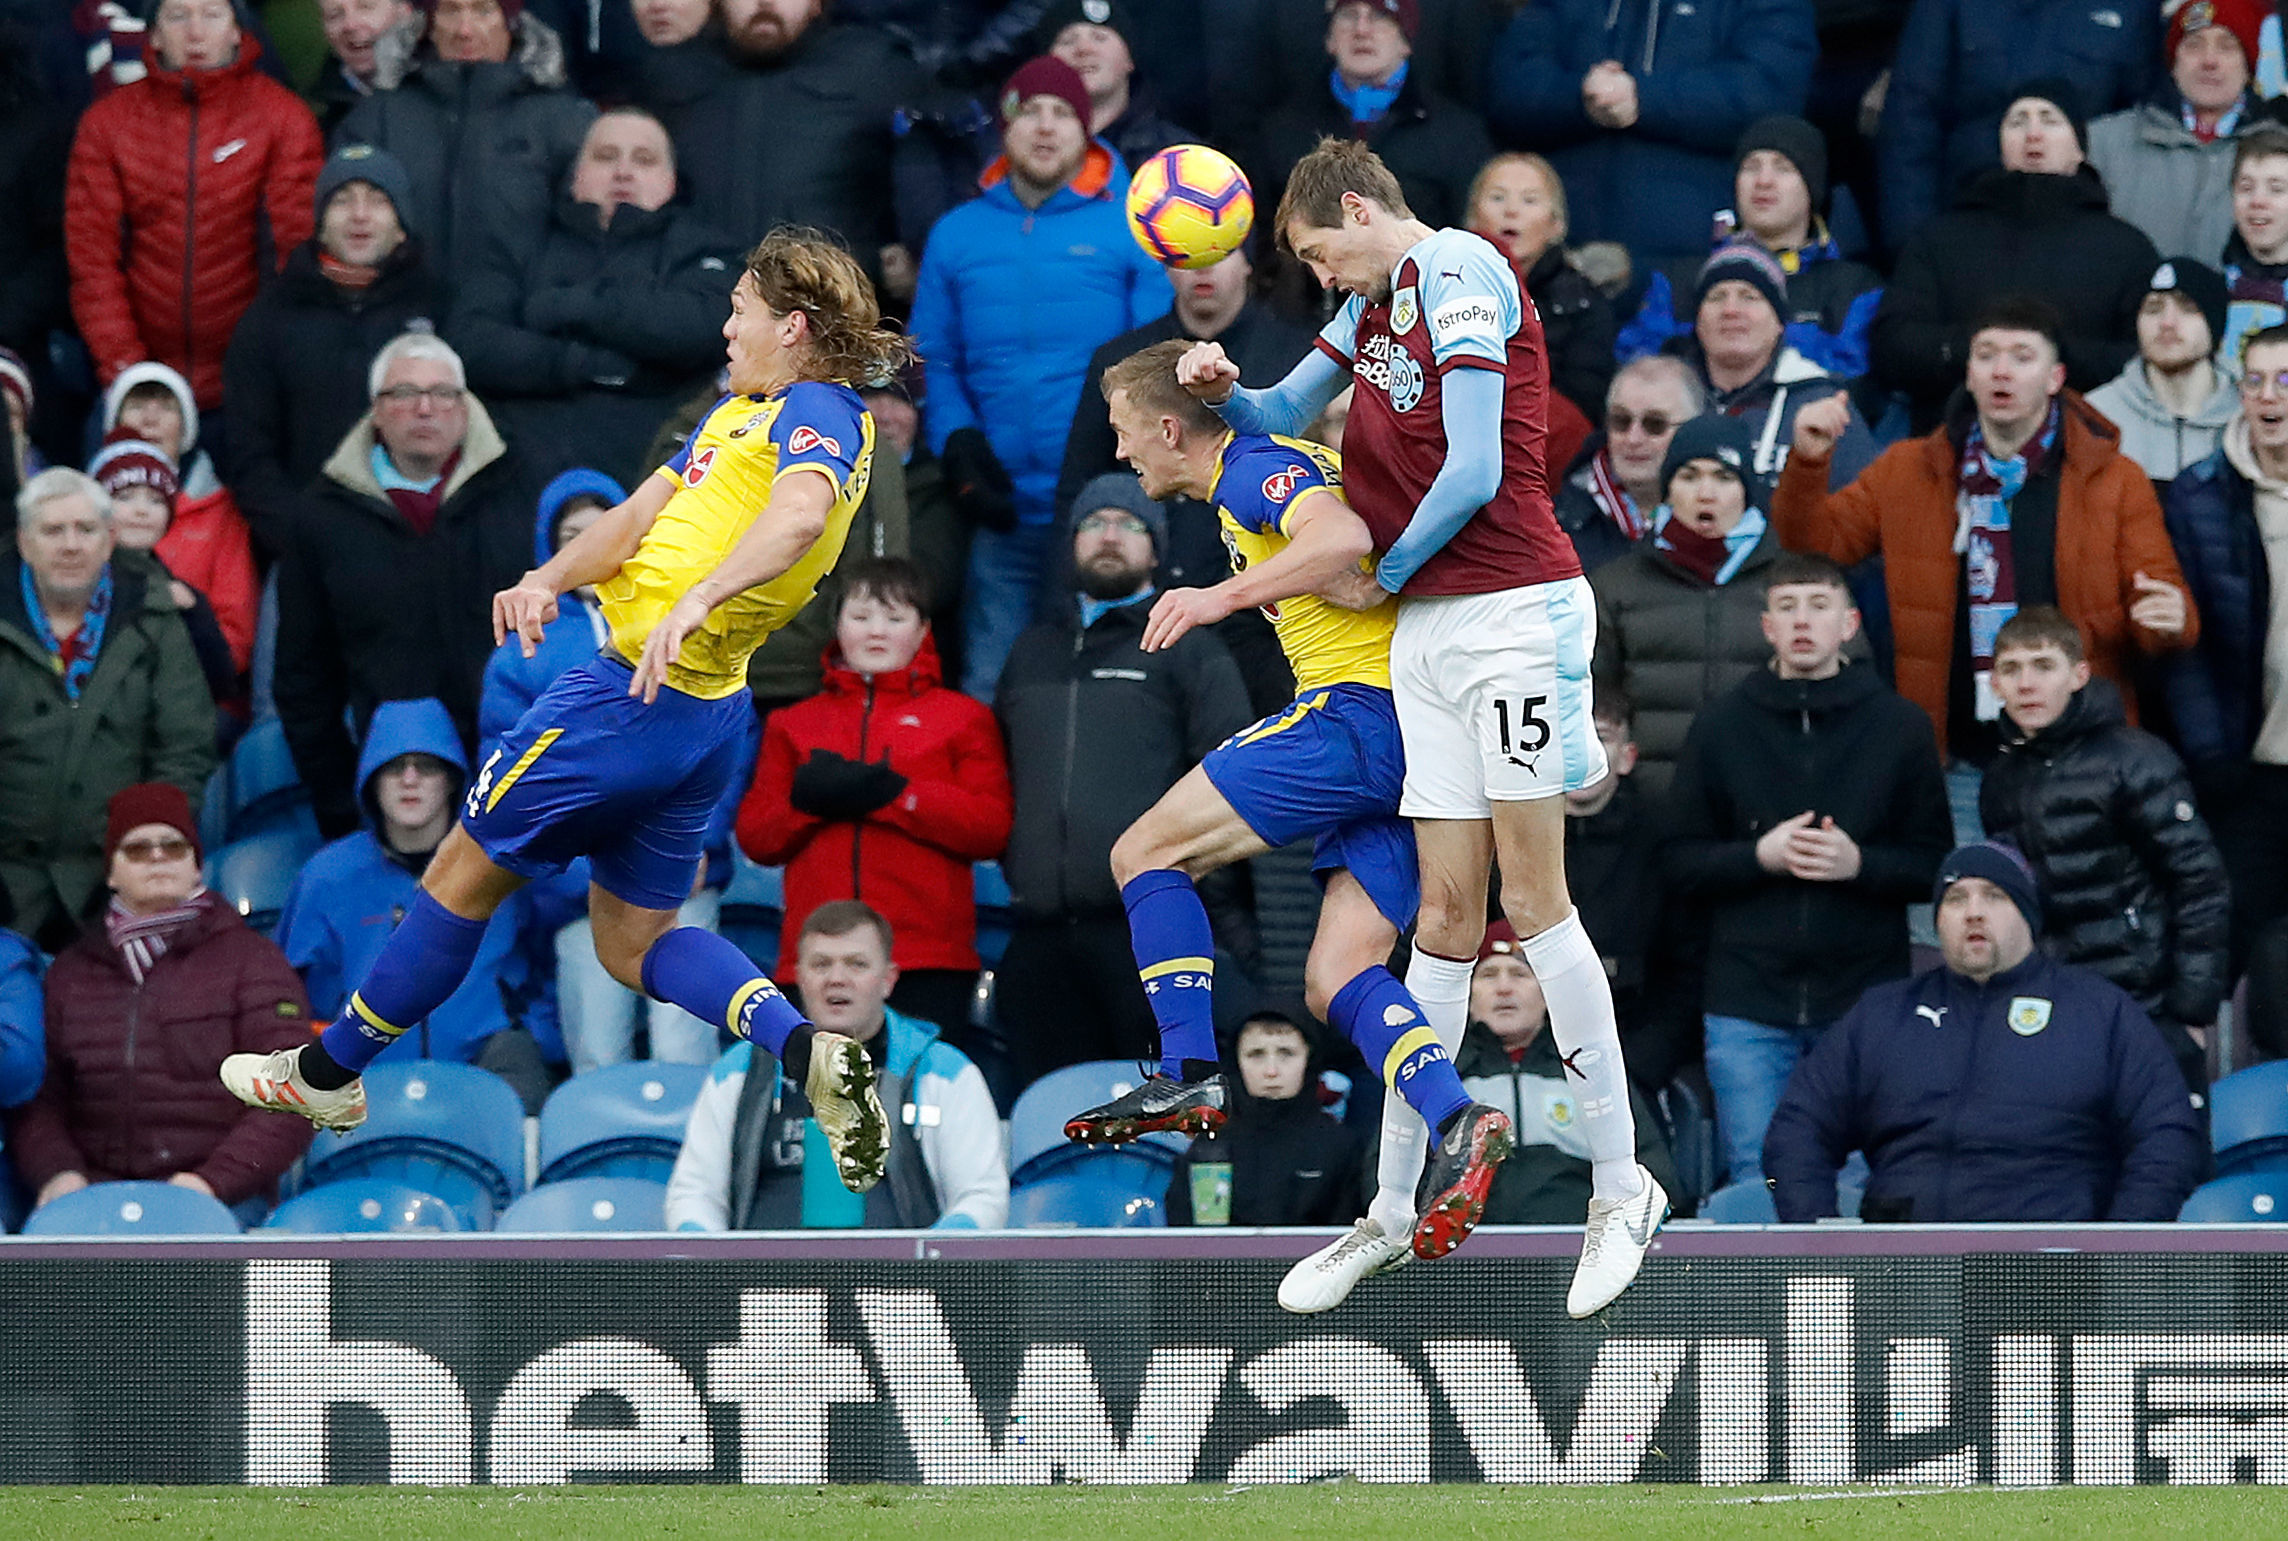 Burnley's Peter Crouch (right) directs a header on goal during the Premier League match at Turf Moor, Burnley. PRESS ASSOCIATION Photo. Picture date: Saturday February 2, 2019. See PA story SOCCER Burnley. Photo credit should read: Martin Rickett/PA